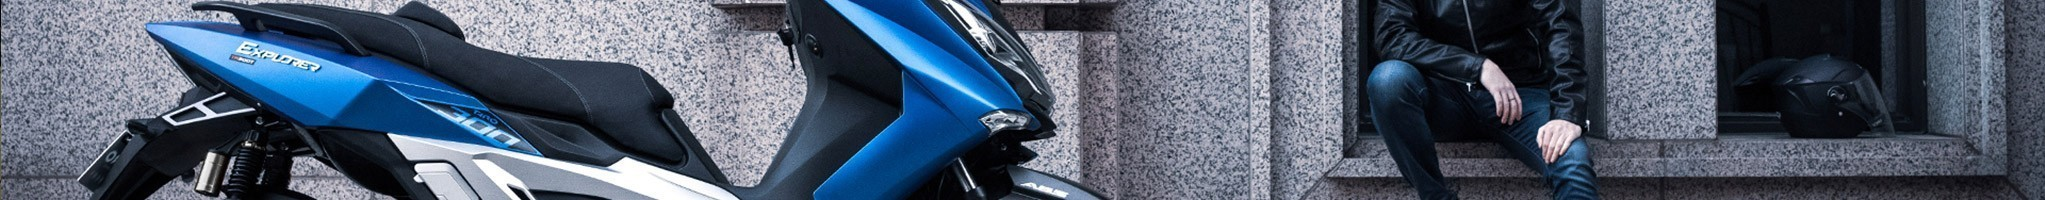 Taro electric scooters & motorcyles | New Energy Mobility - eMobility at the best prices